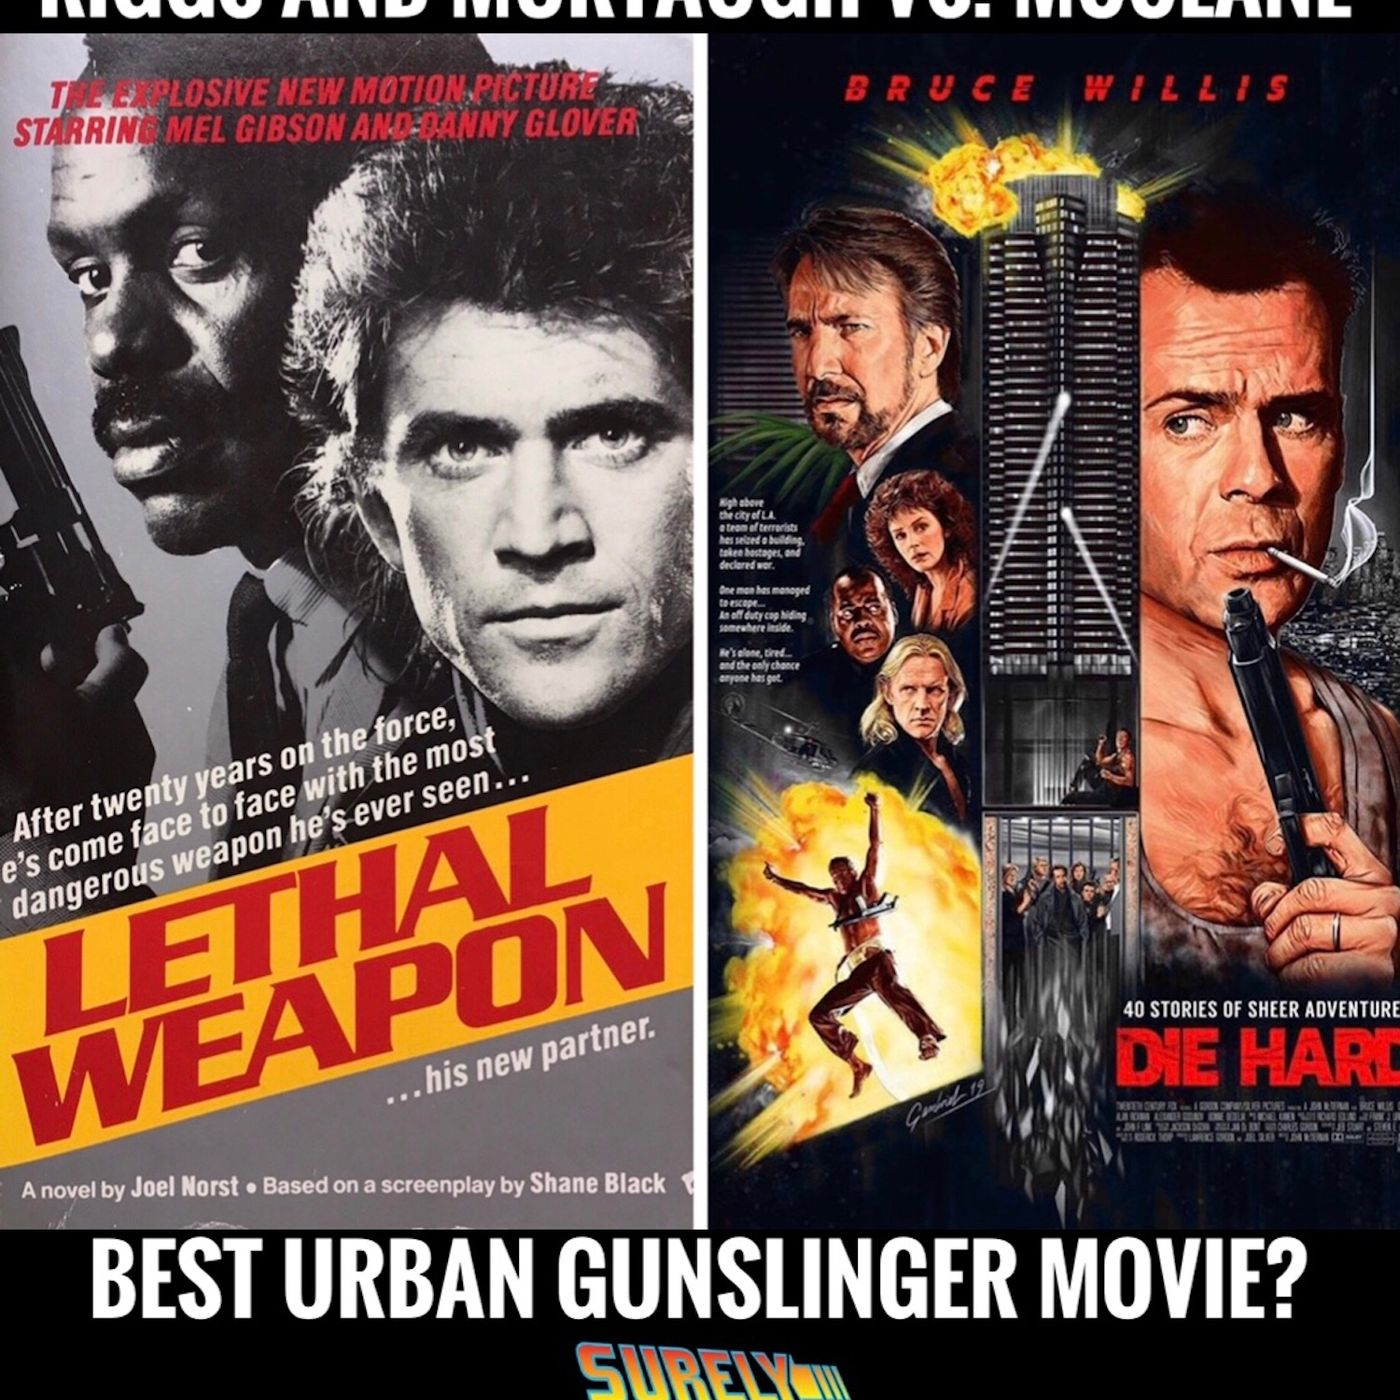 Lethal Weapon (1987) vs. Die Hard (1988) (Pt. 2): Urban Gunslingers